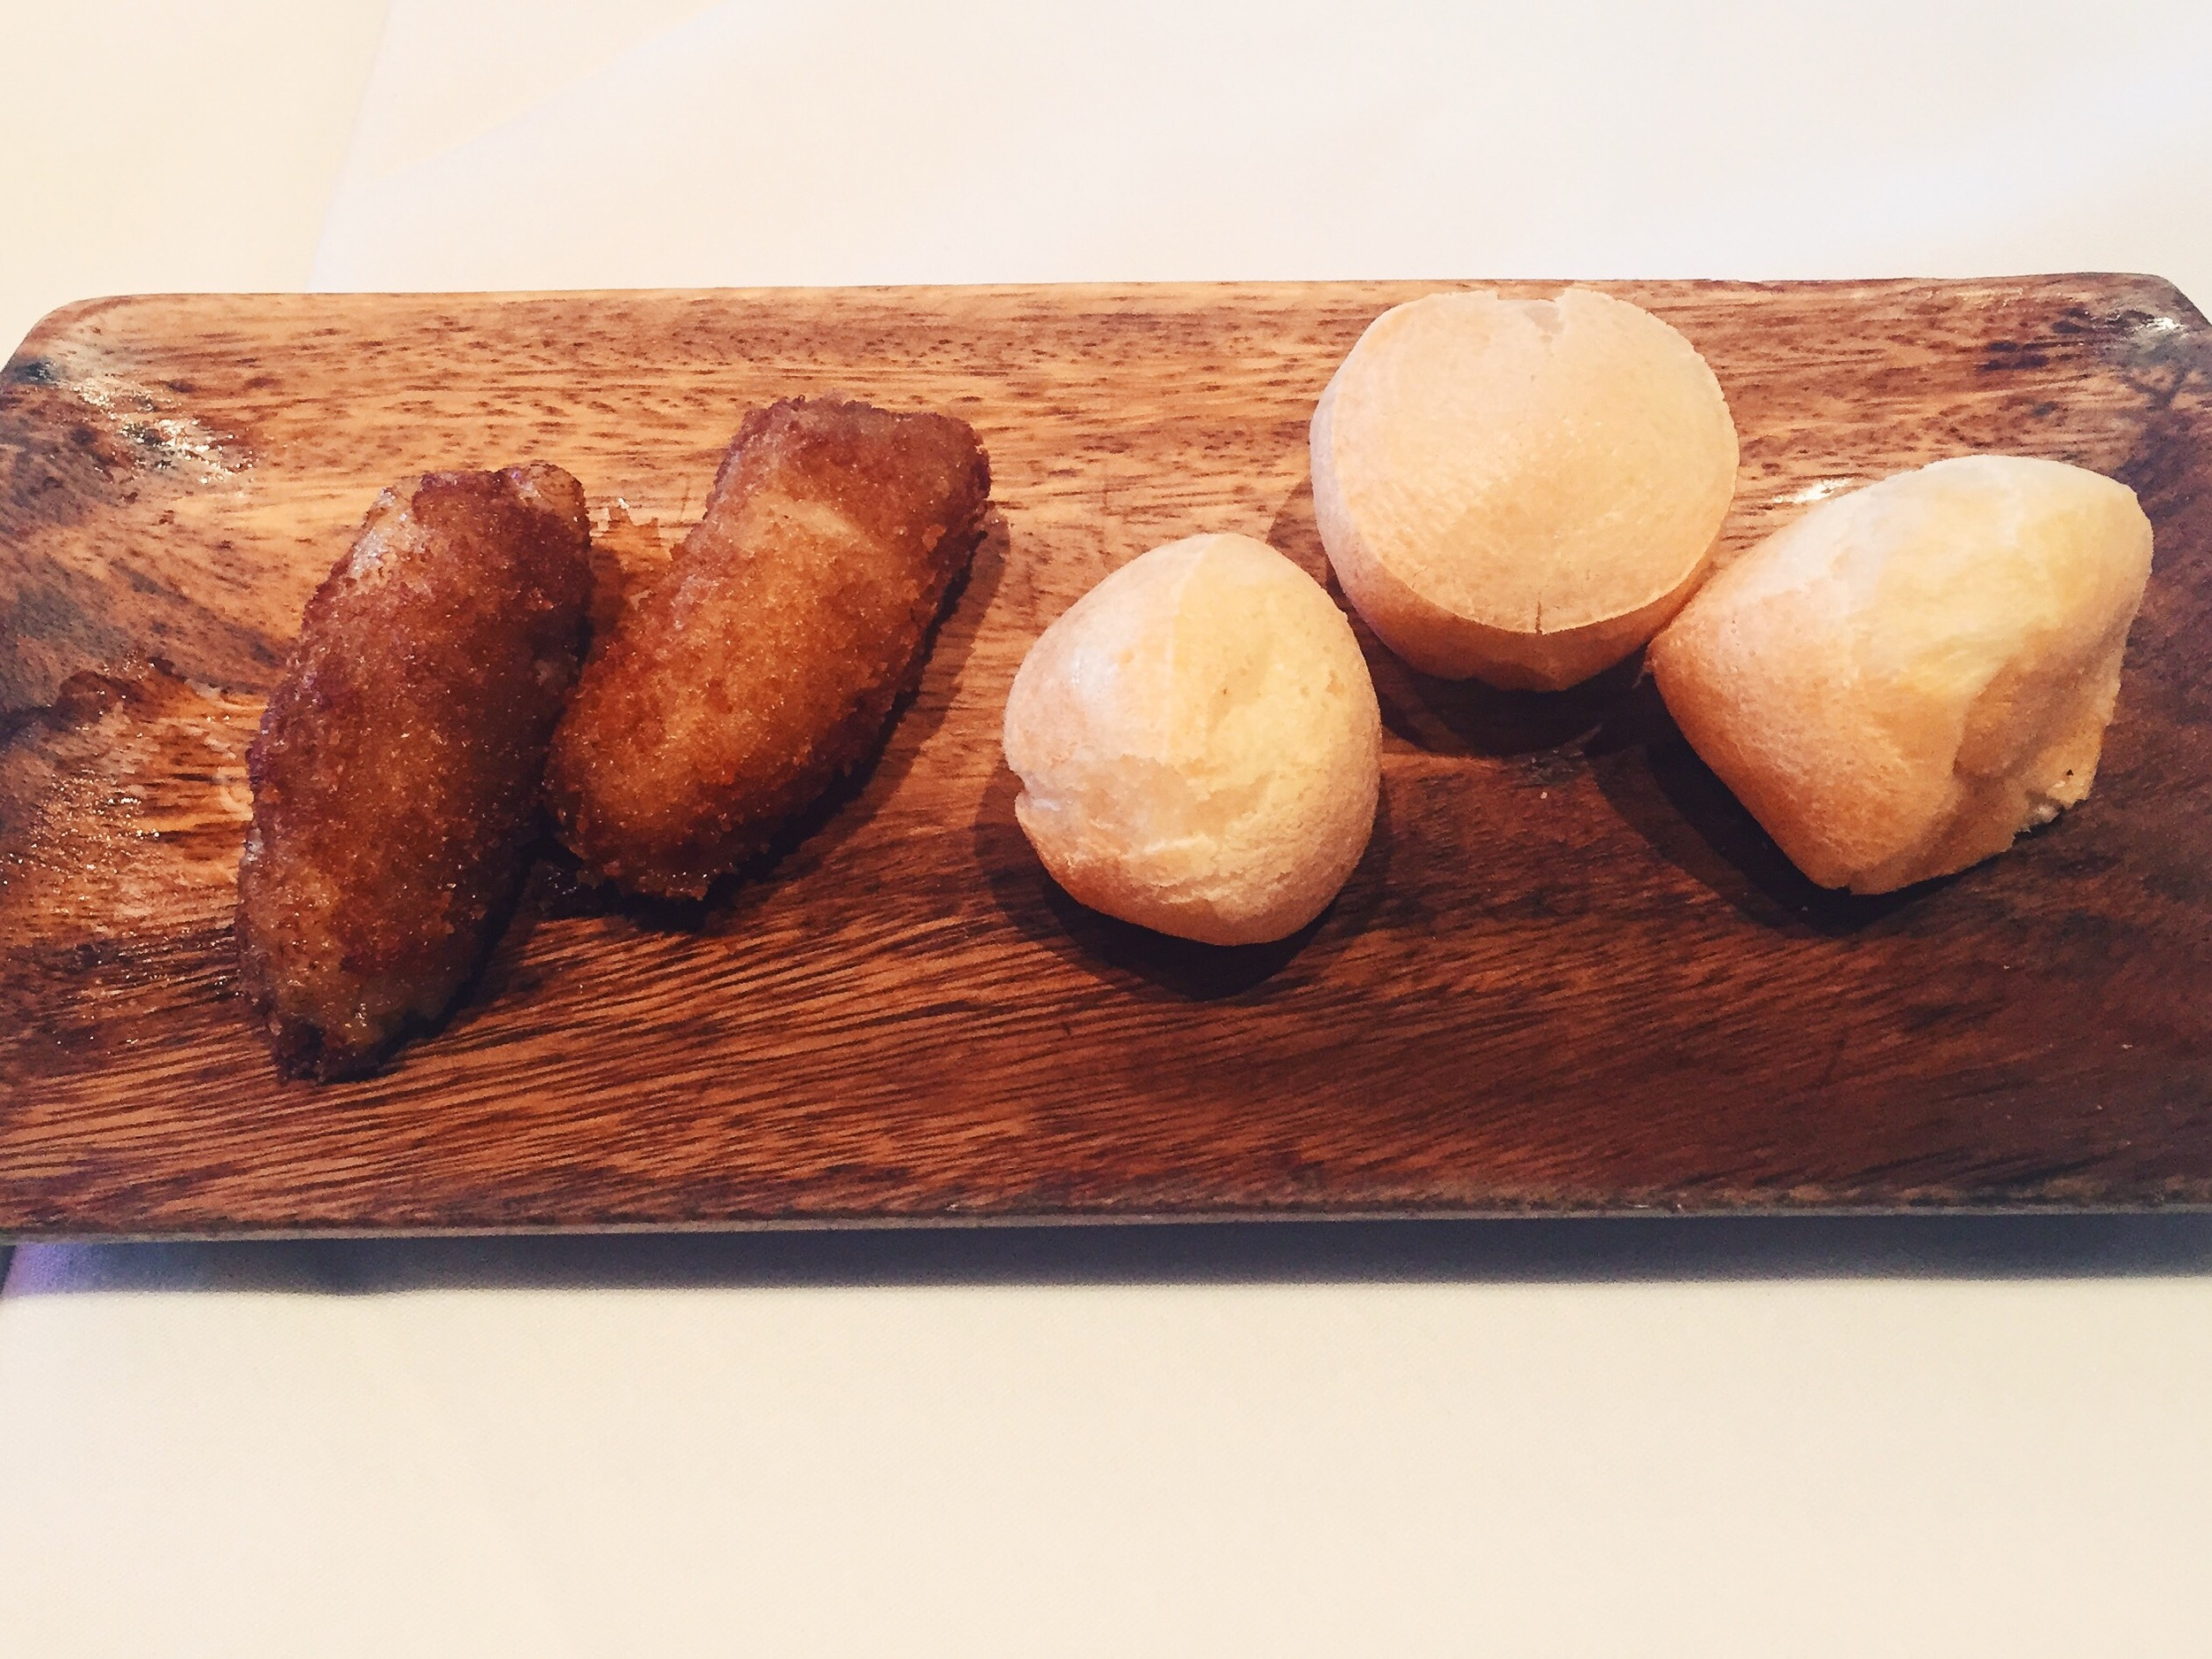 Traditional Brazilian appetizers - fried plantains and cheese bread.